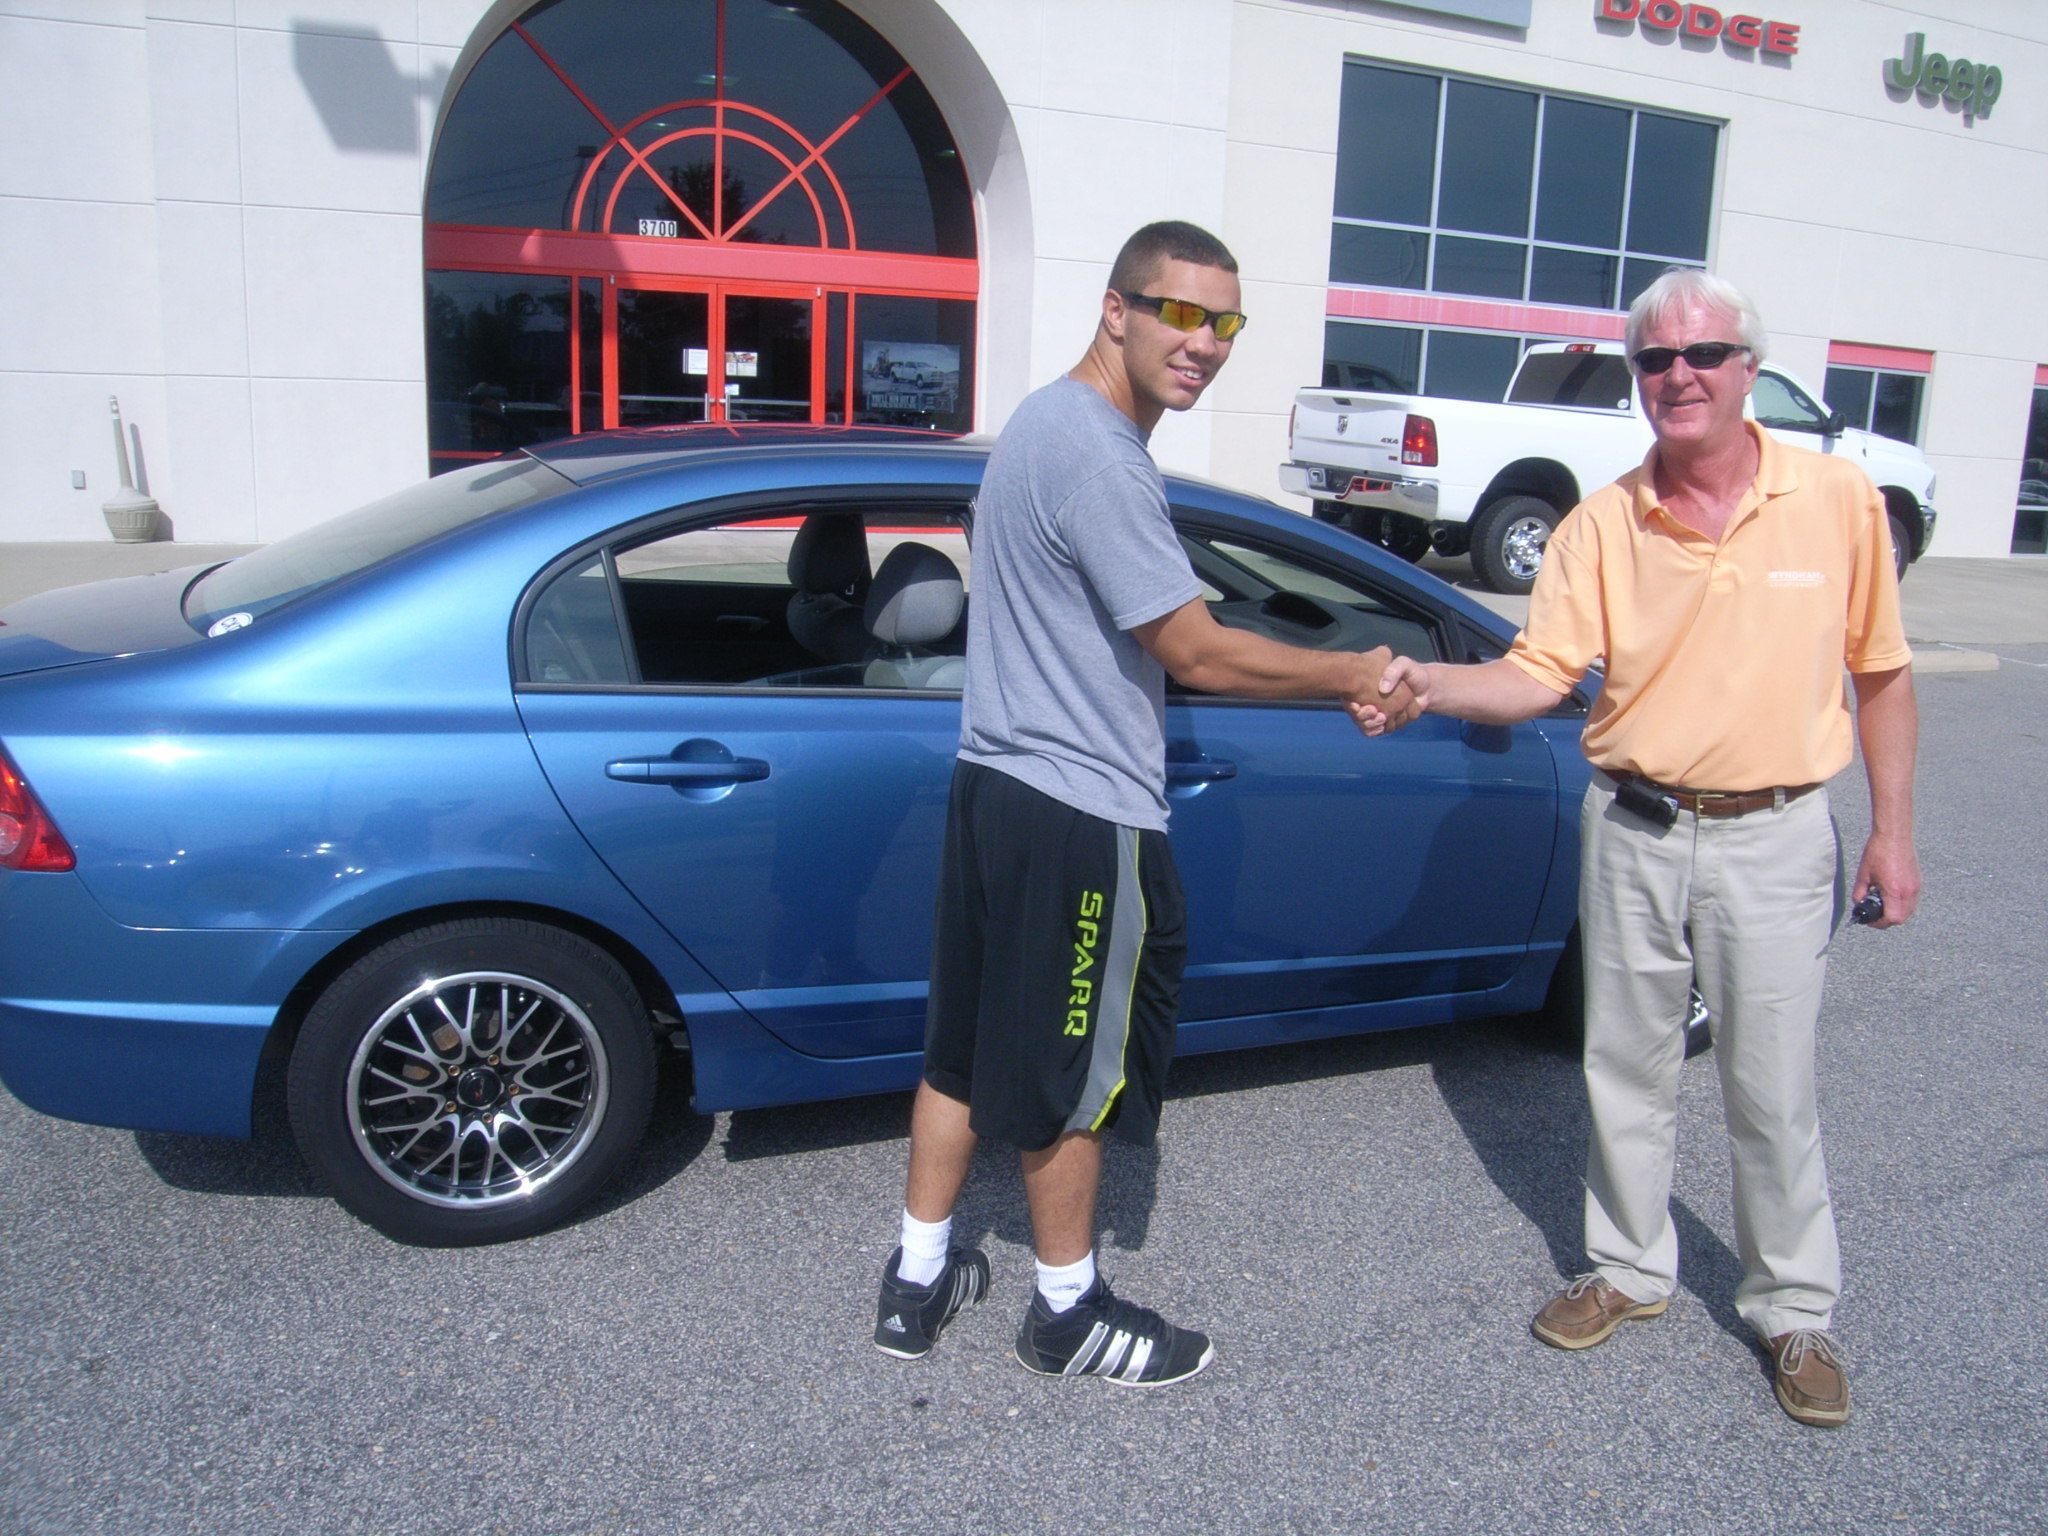 Thursday August 9, Charles from Goldsboro NC is picking up